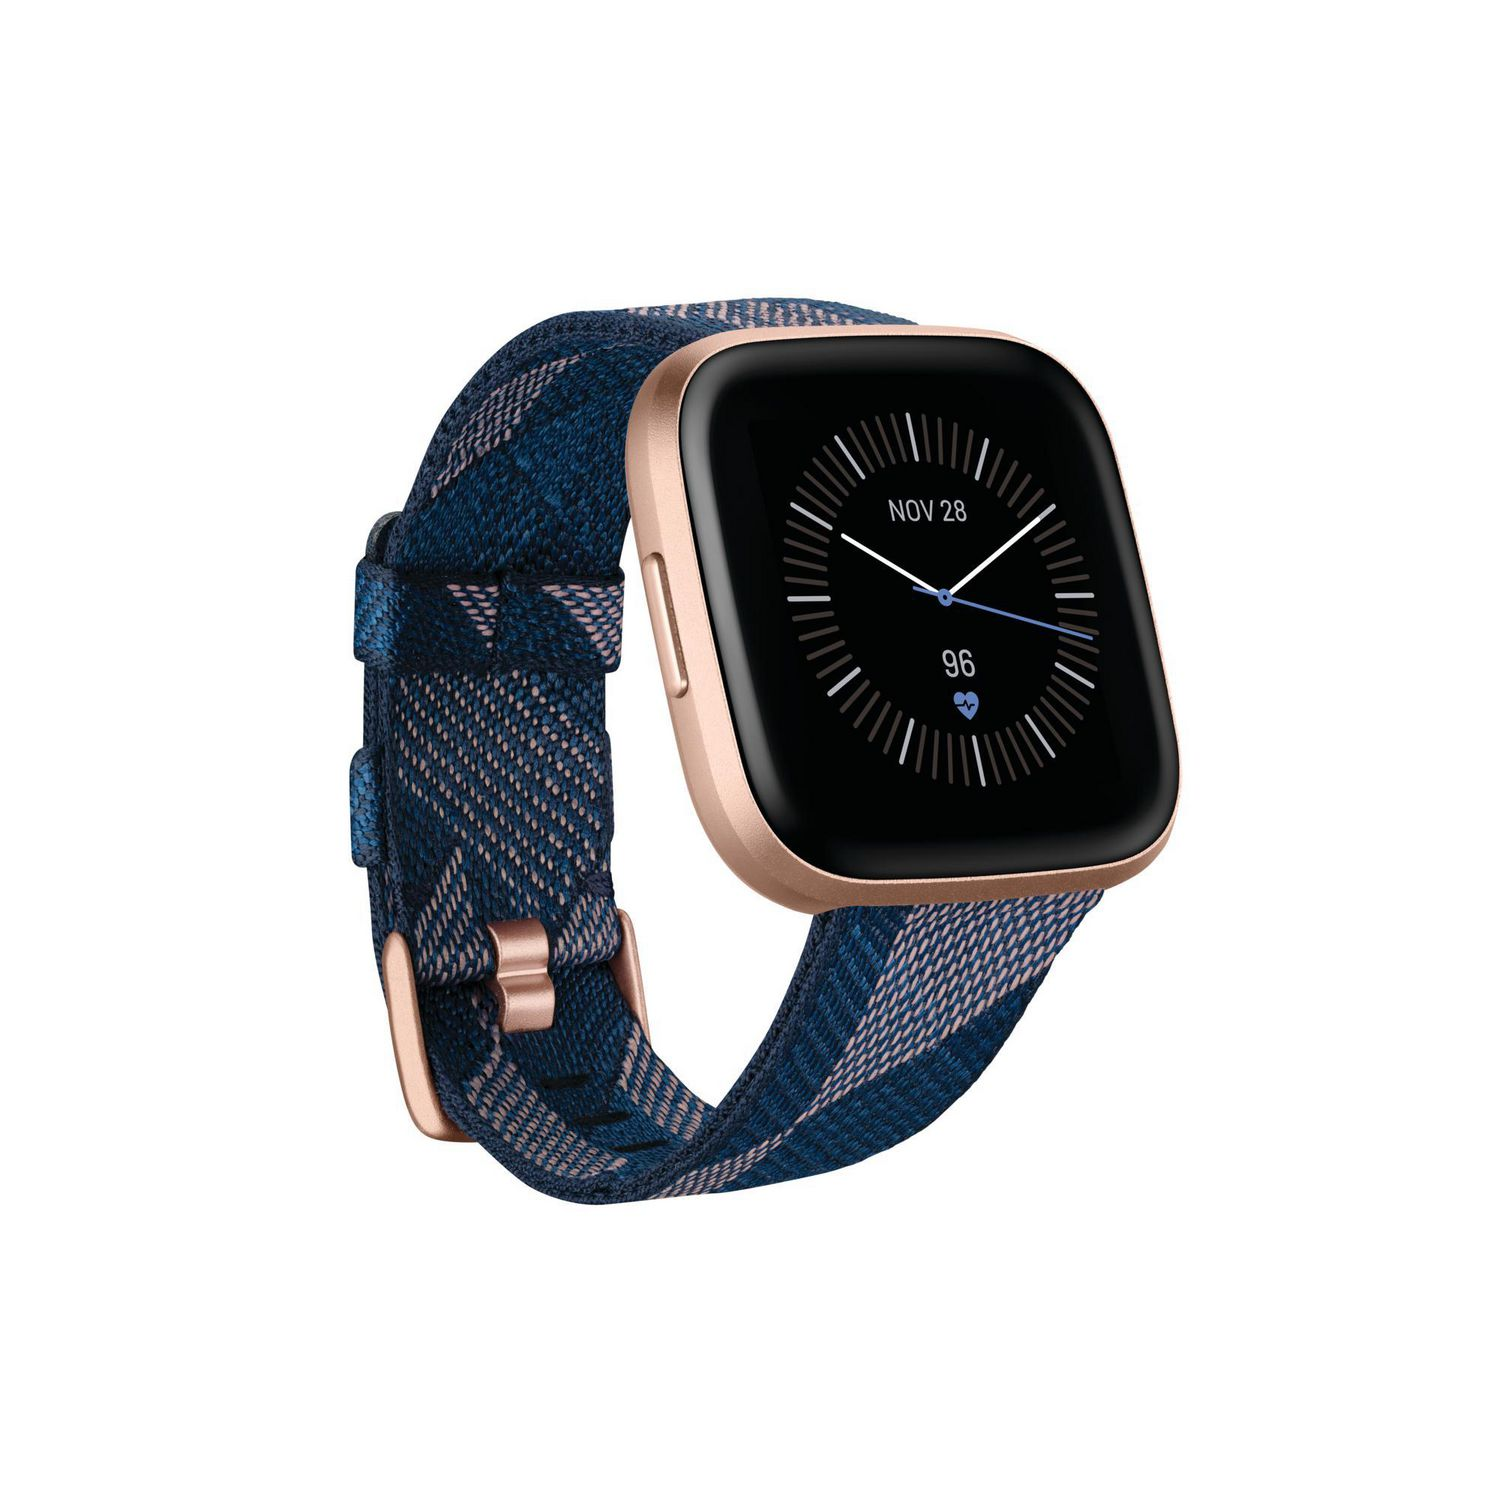 Fitbit Versa 2 Special Edition in navy and pink woven with copper rose aluminum and analogue face display - best Fitbit for runners